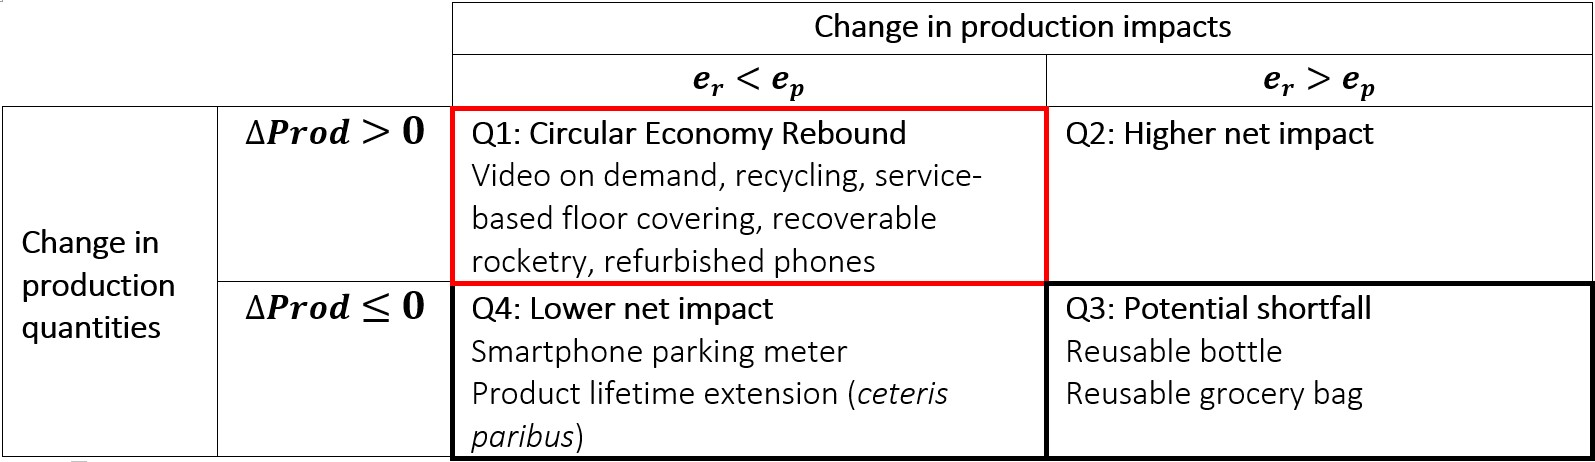 Figure 2: The four possible effects of circular economy activities. The goal is to encourage activities in Q4, while limiting rebound in Q1 and guarding against shortfall in Q3.